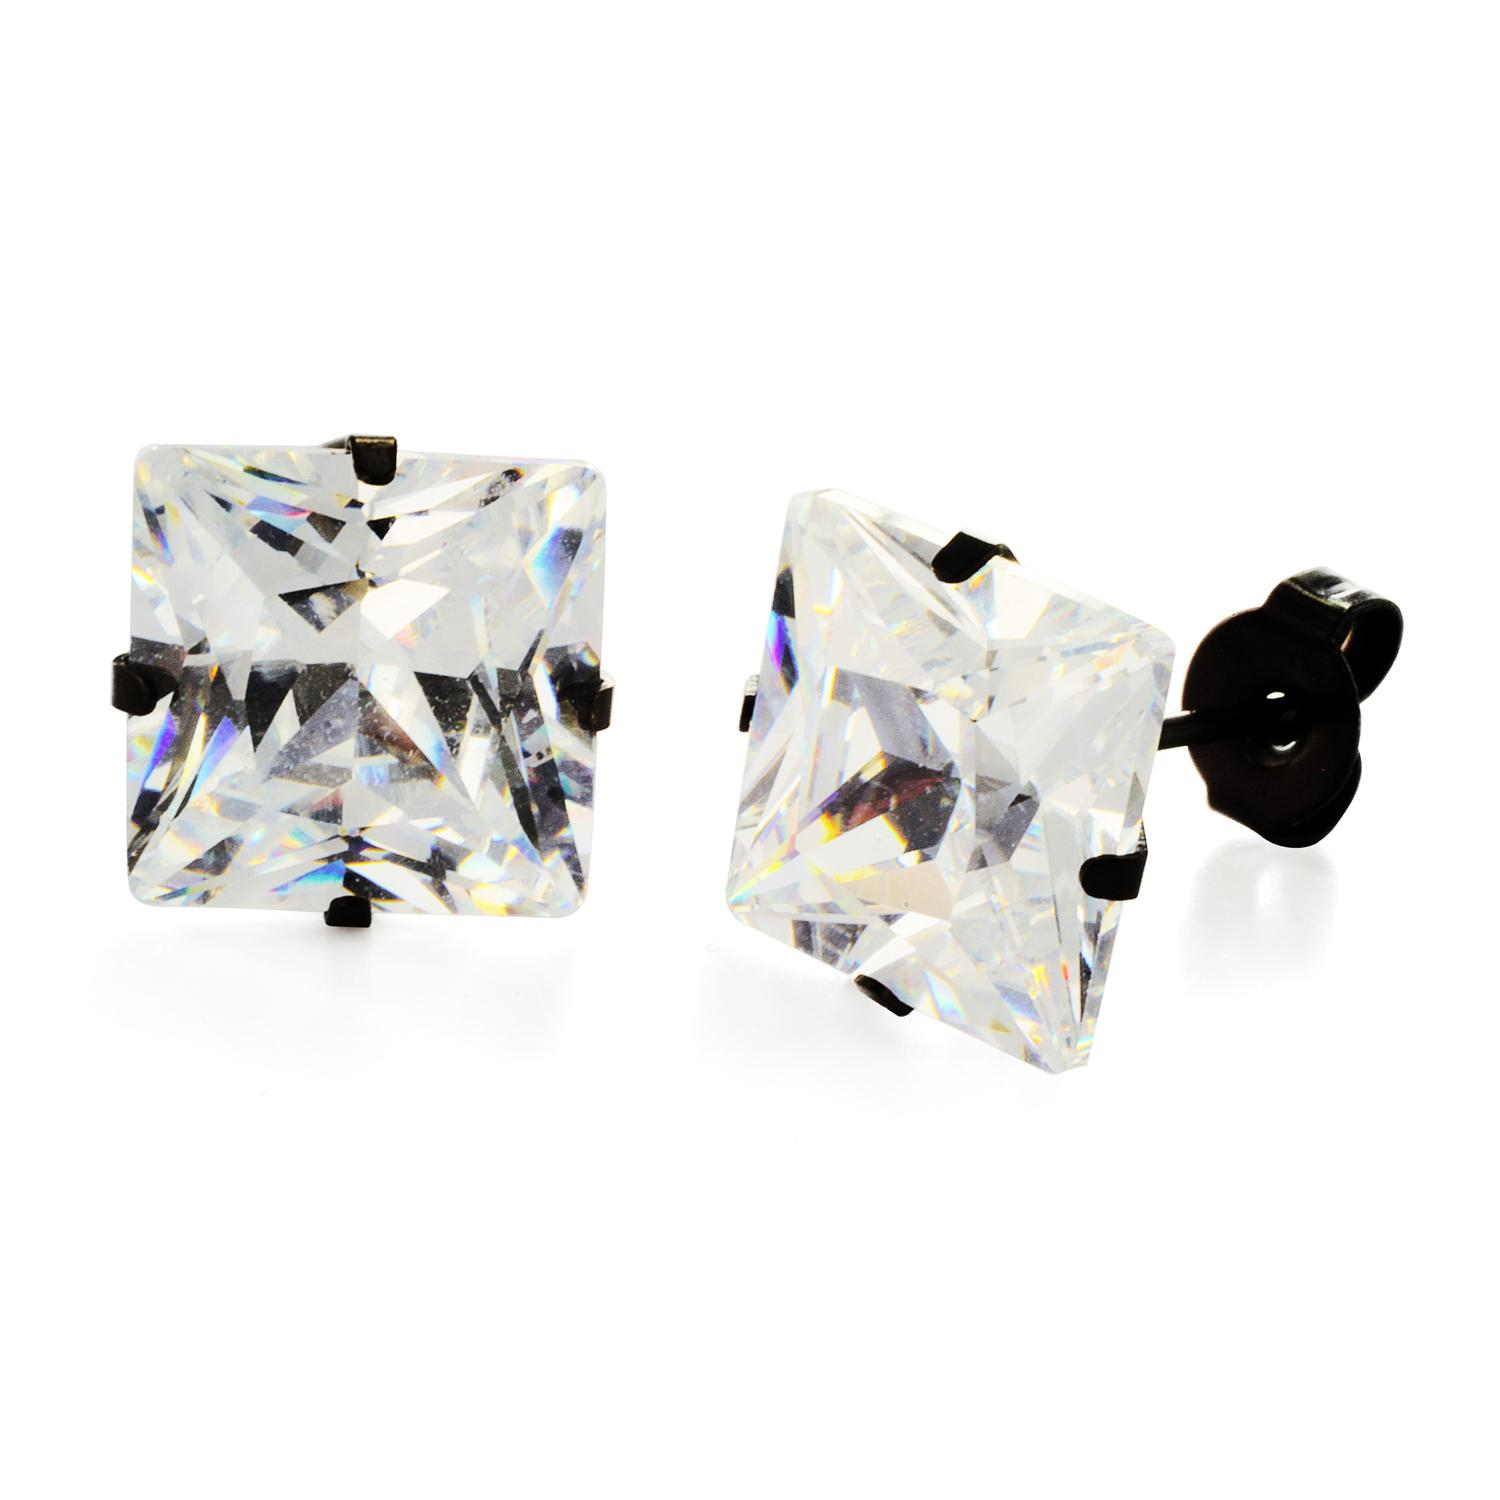 Black Plated Stainless Steel Stud Earrings with Princess Cut Clear CZ - 10 mm